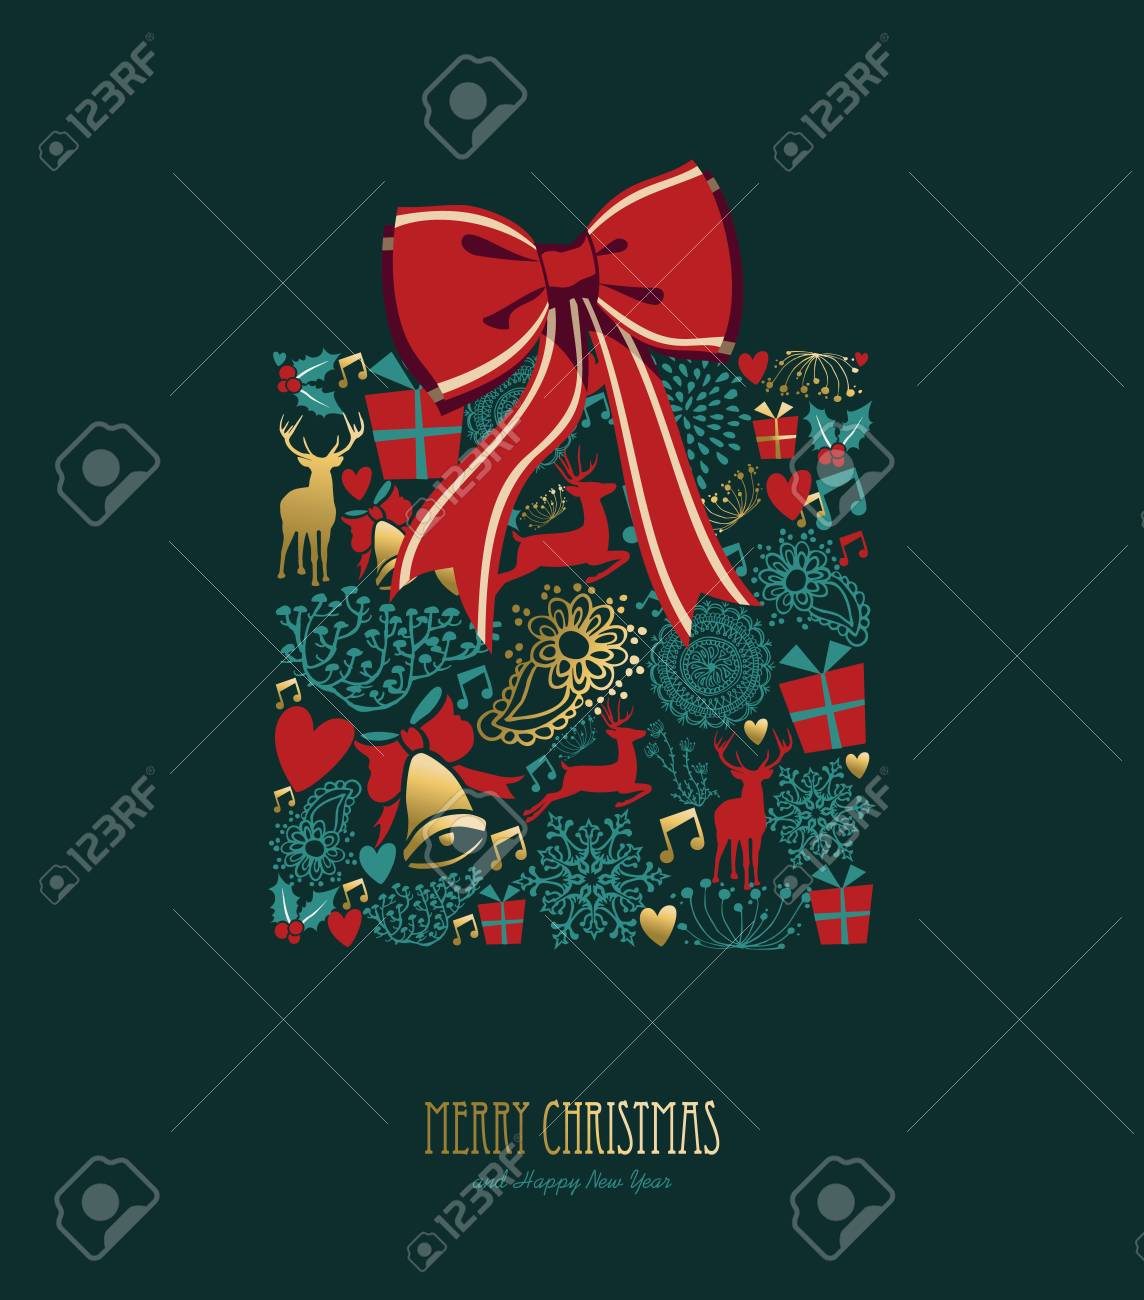 merry christmas happy new year greeting card design holiday elements in gold vintage style making